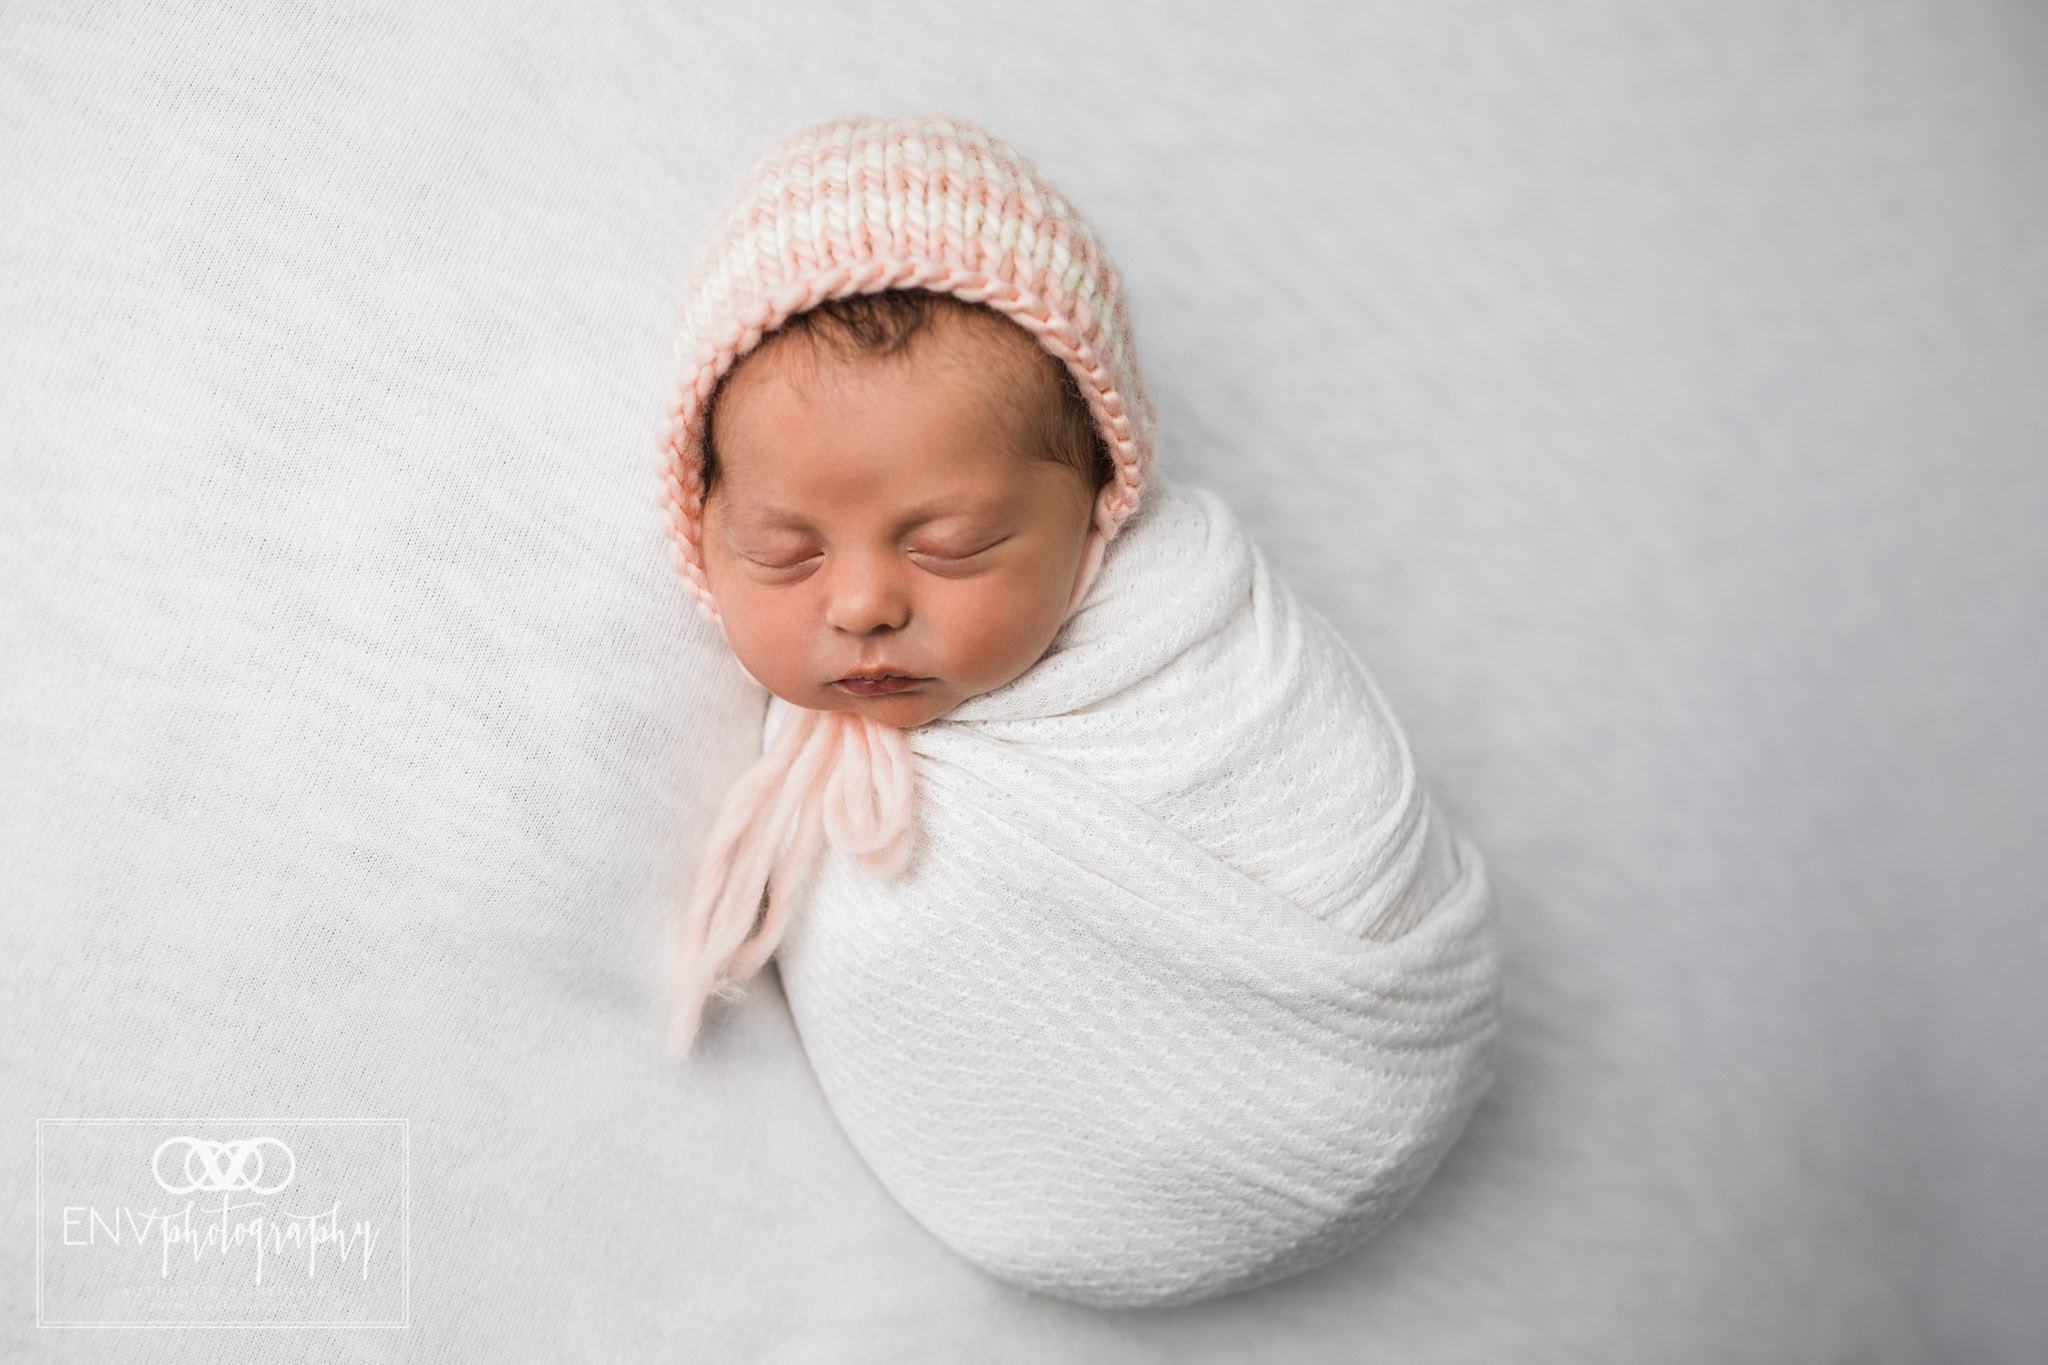 columbus ohio mount vernon ohio newborn photographer (3).jpg